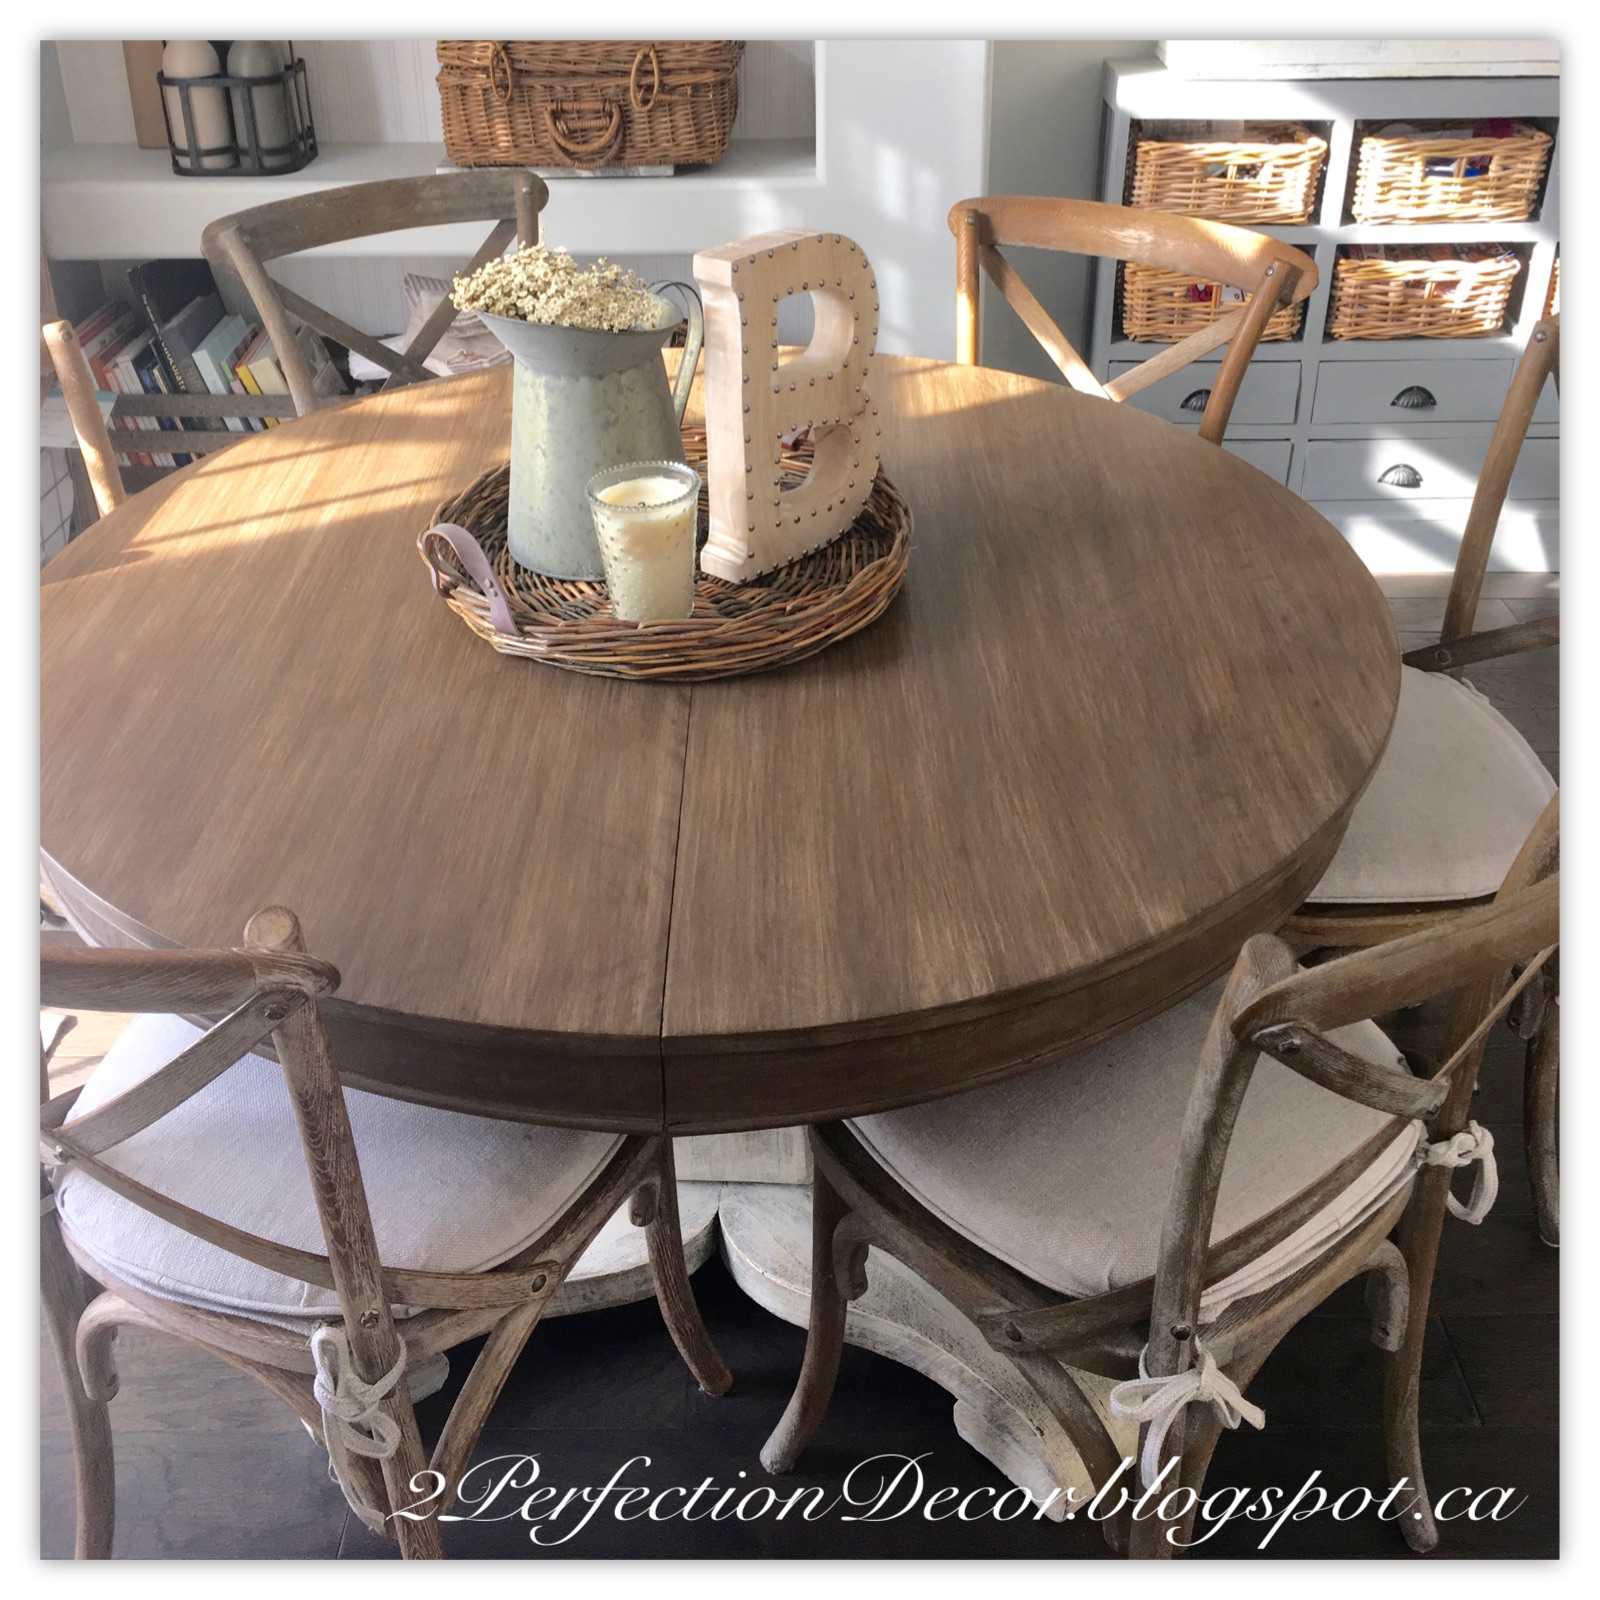 2Perfection Decor Round Kitchen Table Makeover